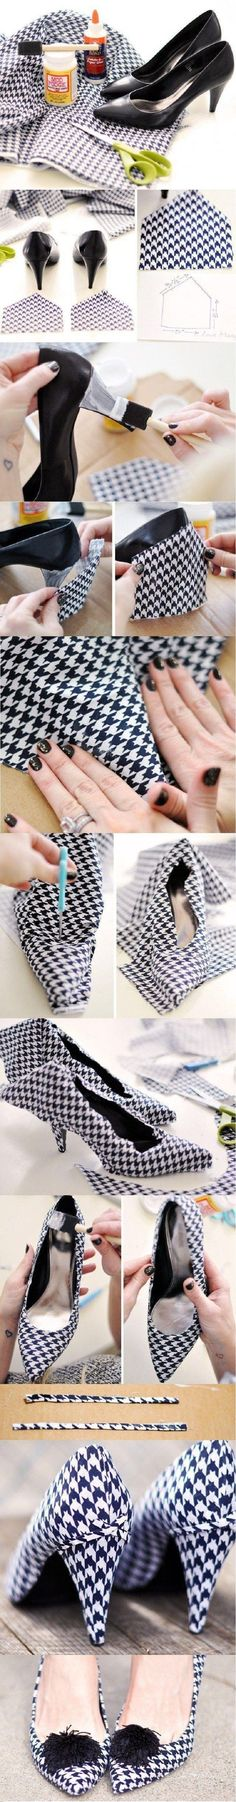 Top 10 Unique DIY Heels Ideas. These are the best ideas I've seen for changing shoes. There are some really ideas here.: